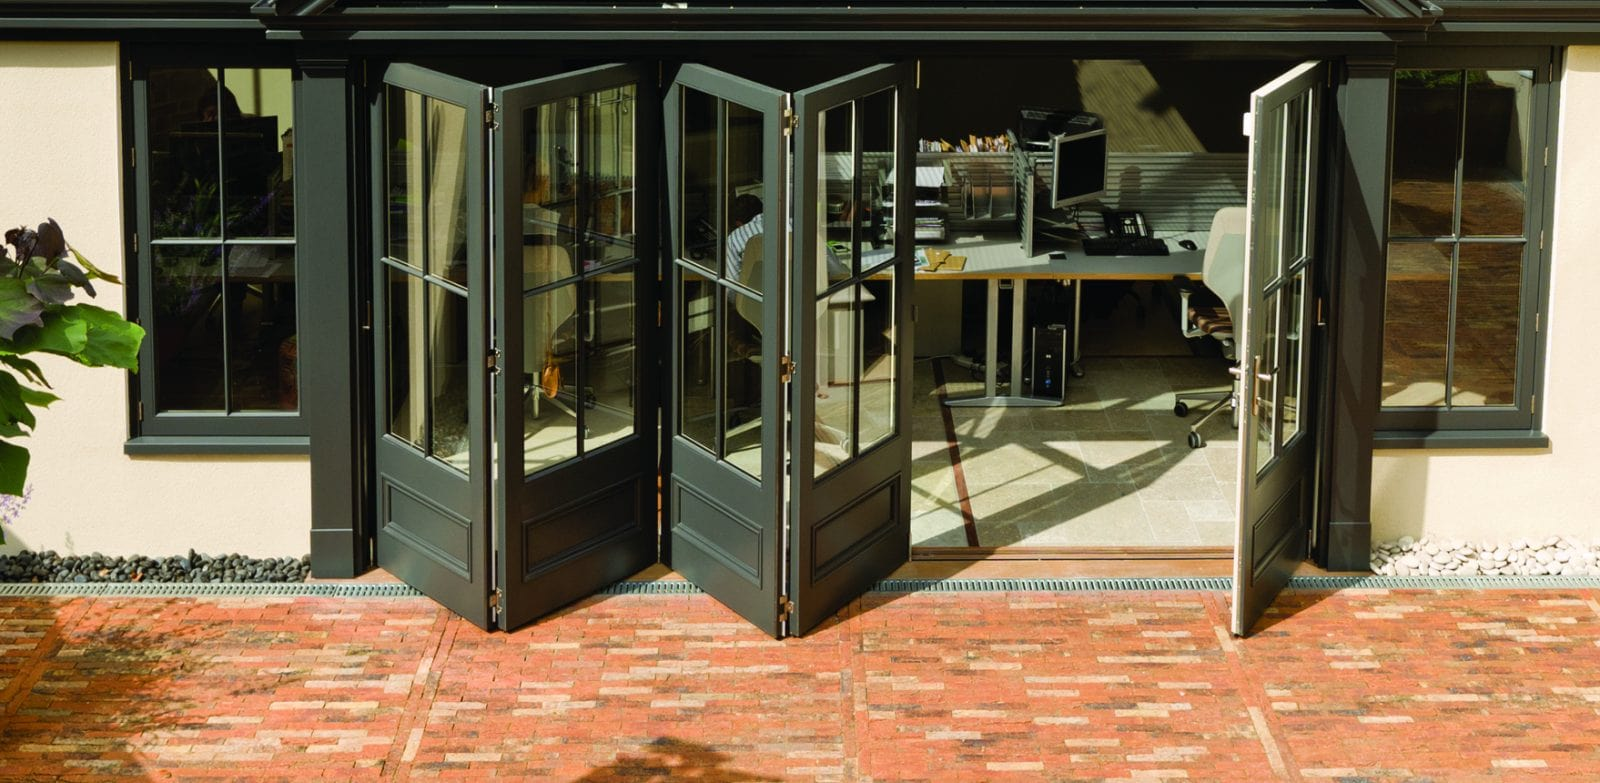 What are bi-folding doors?